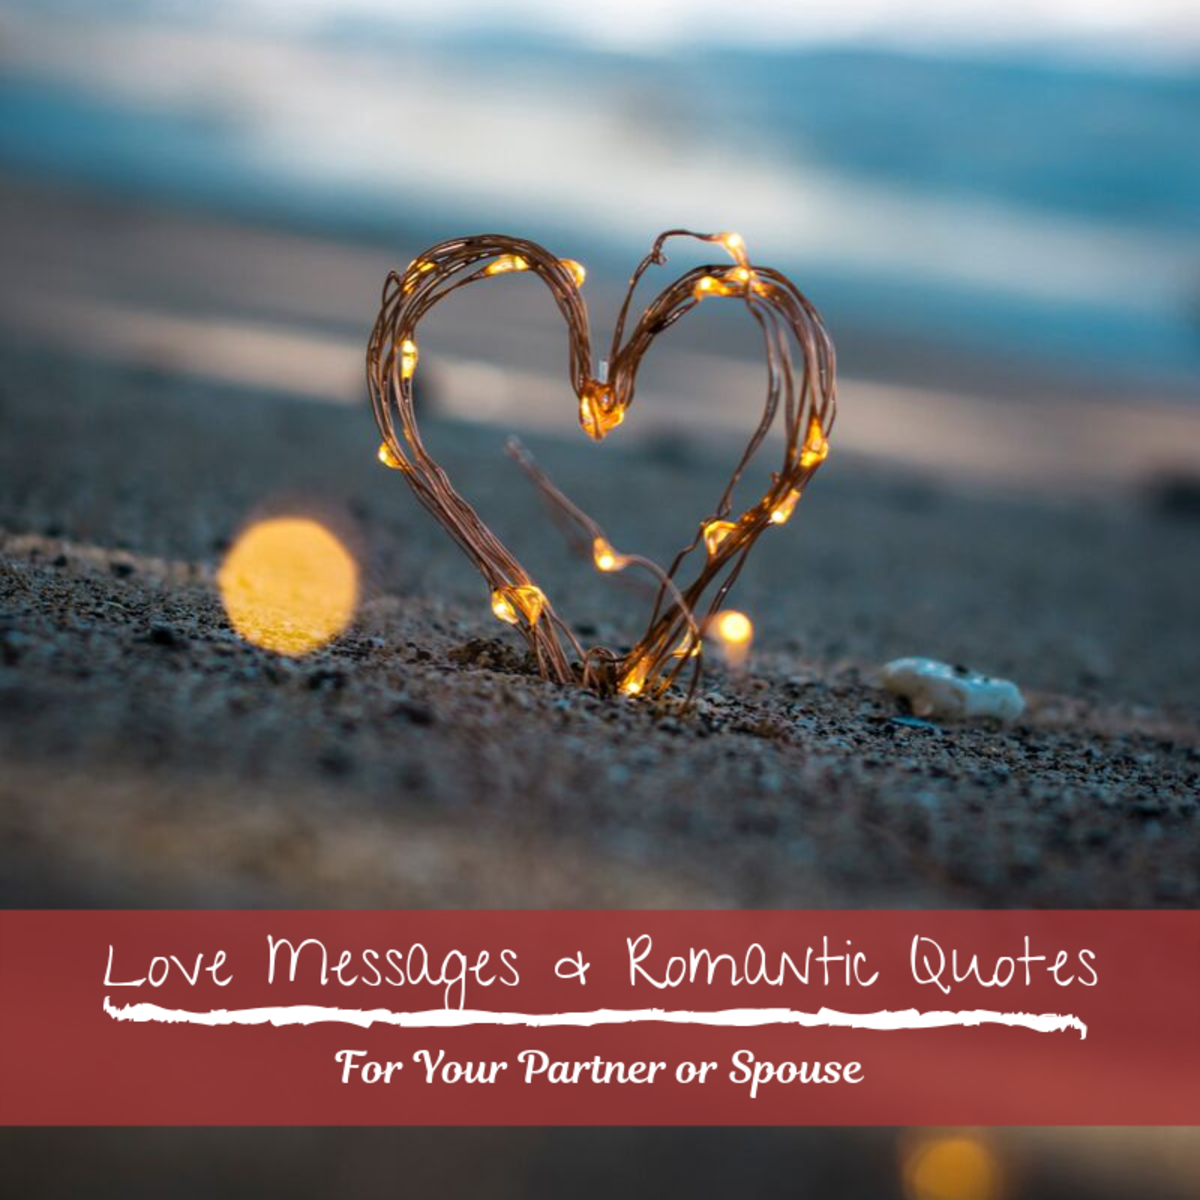 Example Love Messages and Romantic Quotes for a Partner